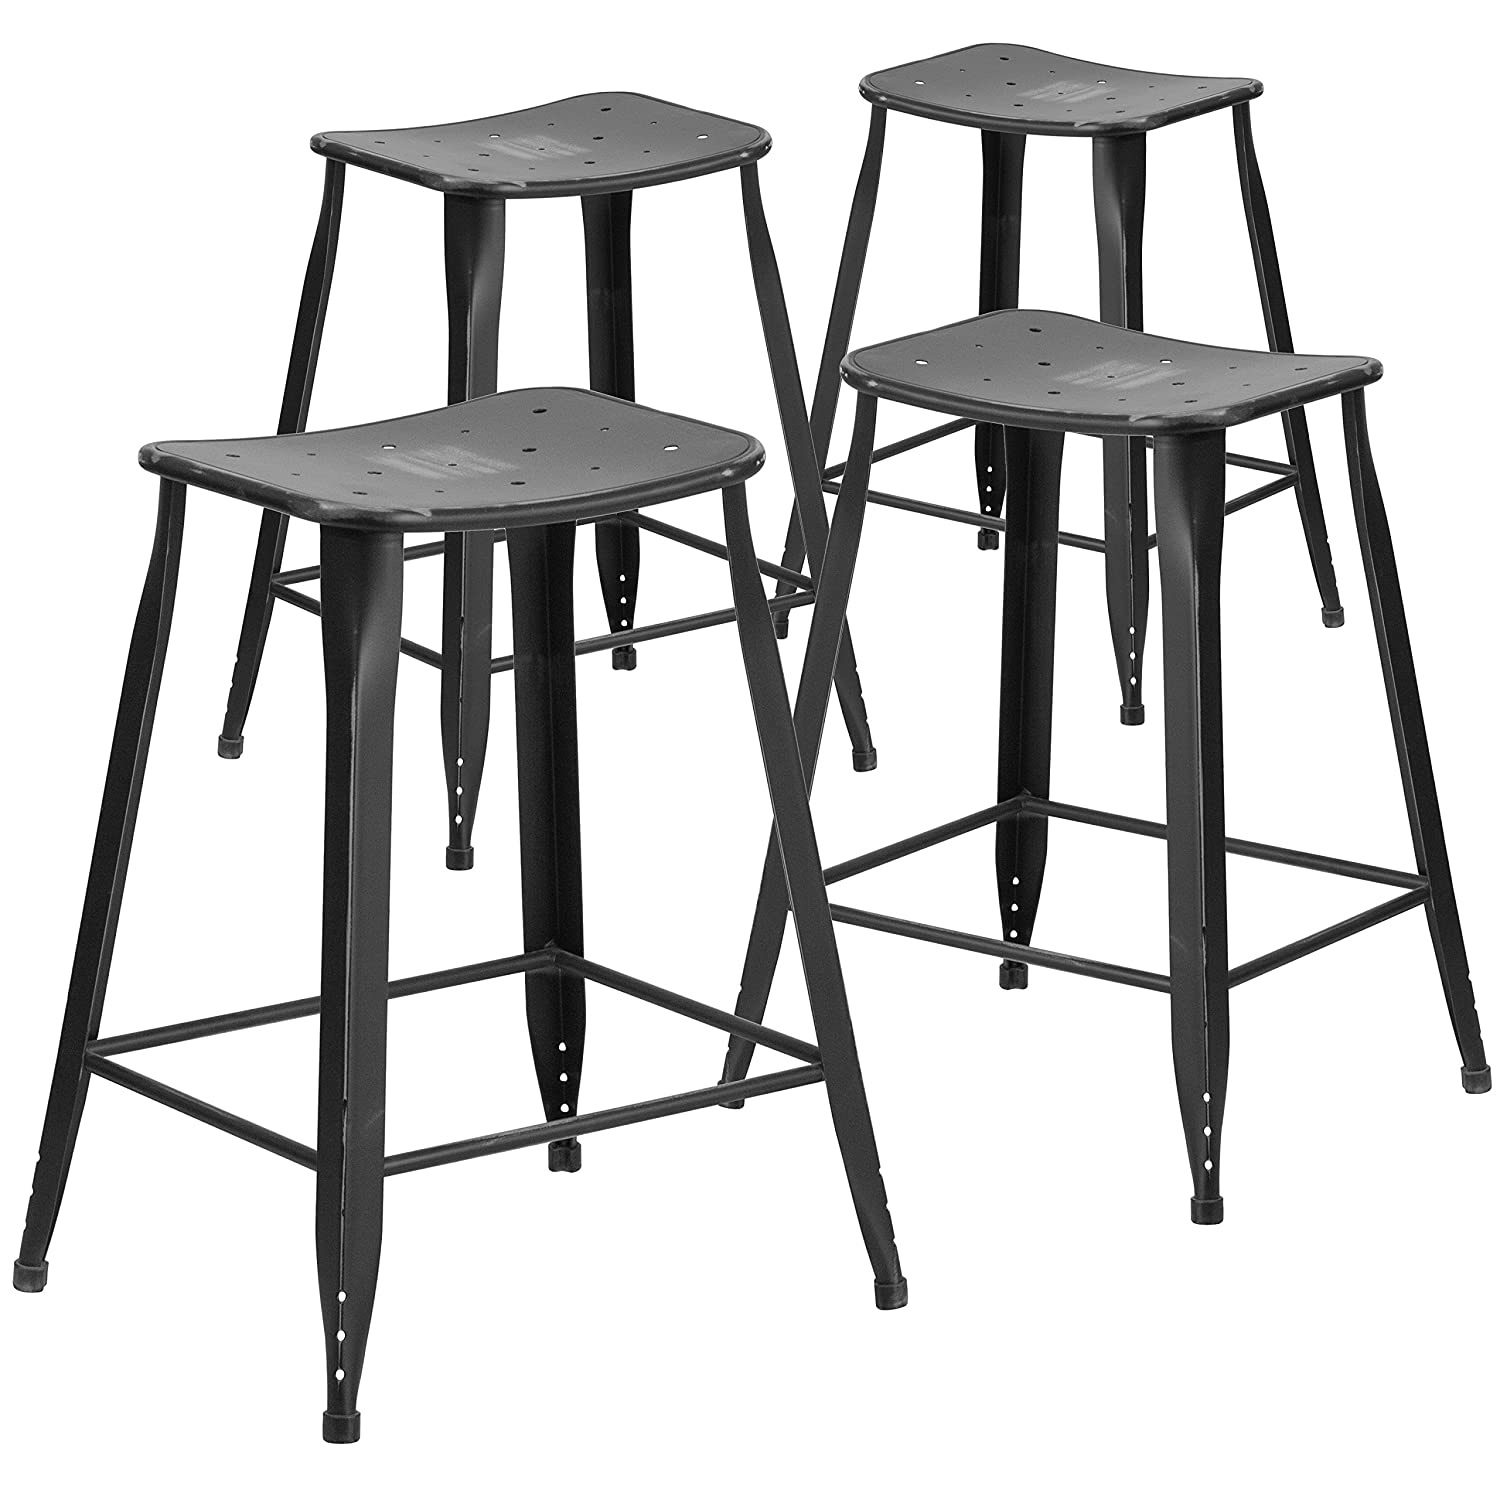 Flash Furniture 24'' High Distressed Kelly Red Metal Indoor-Outdoor Counter Height Saddle Comfort Stool ET-3604-24-DISRED-GG